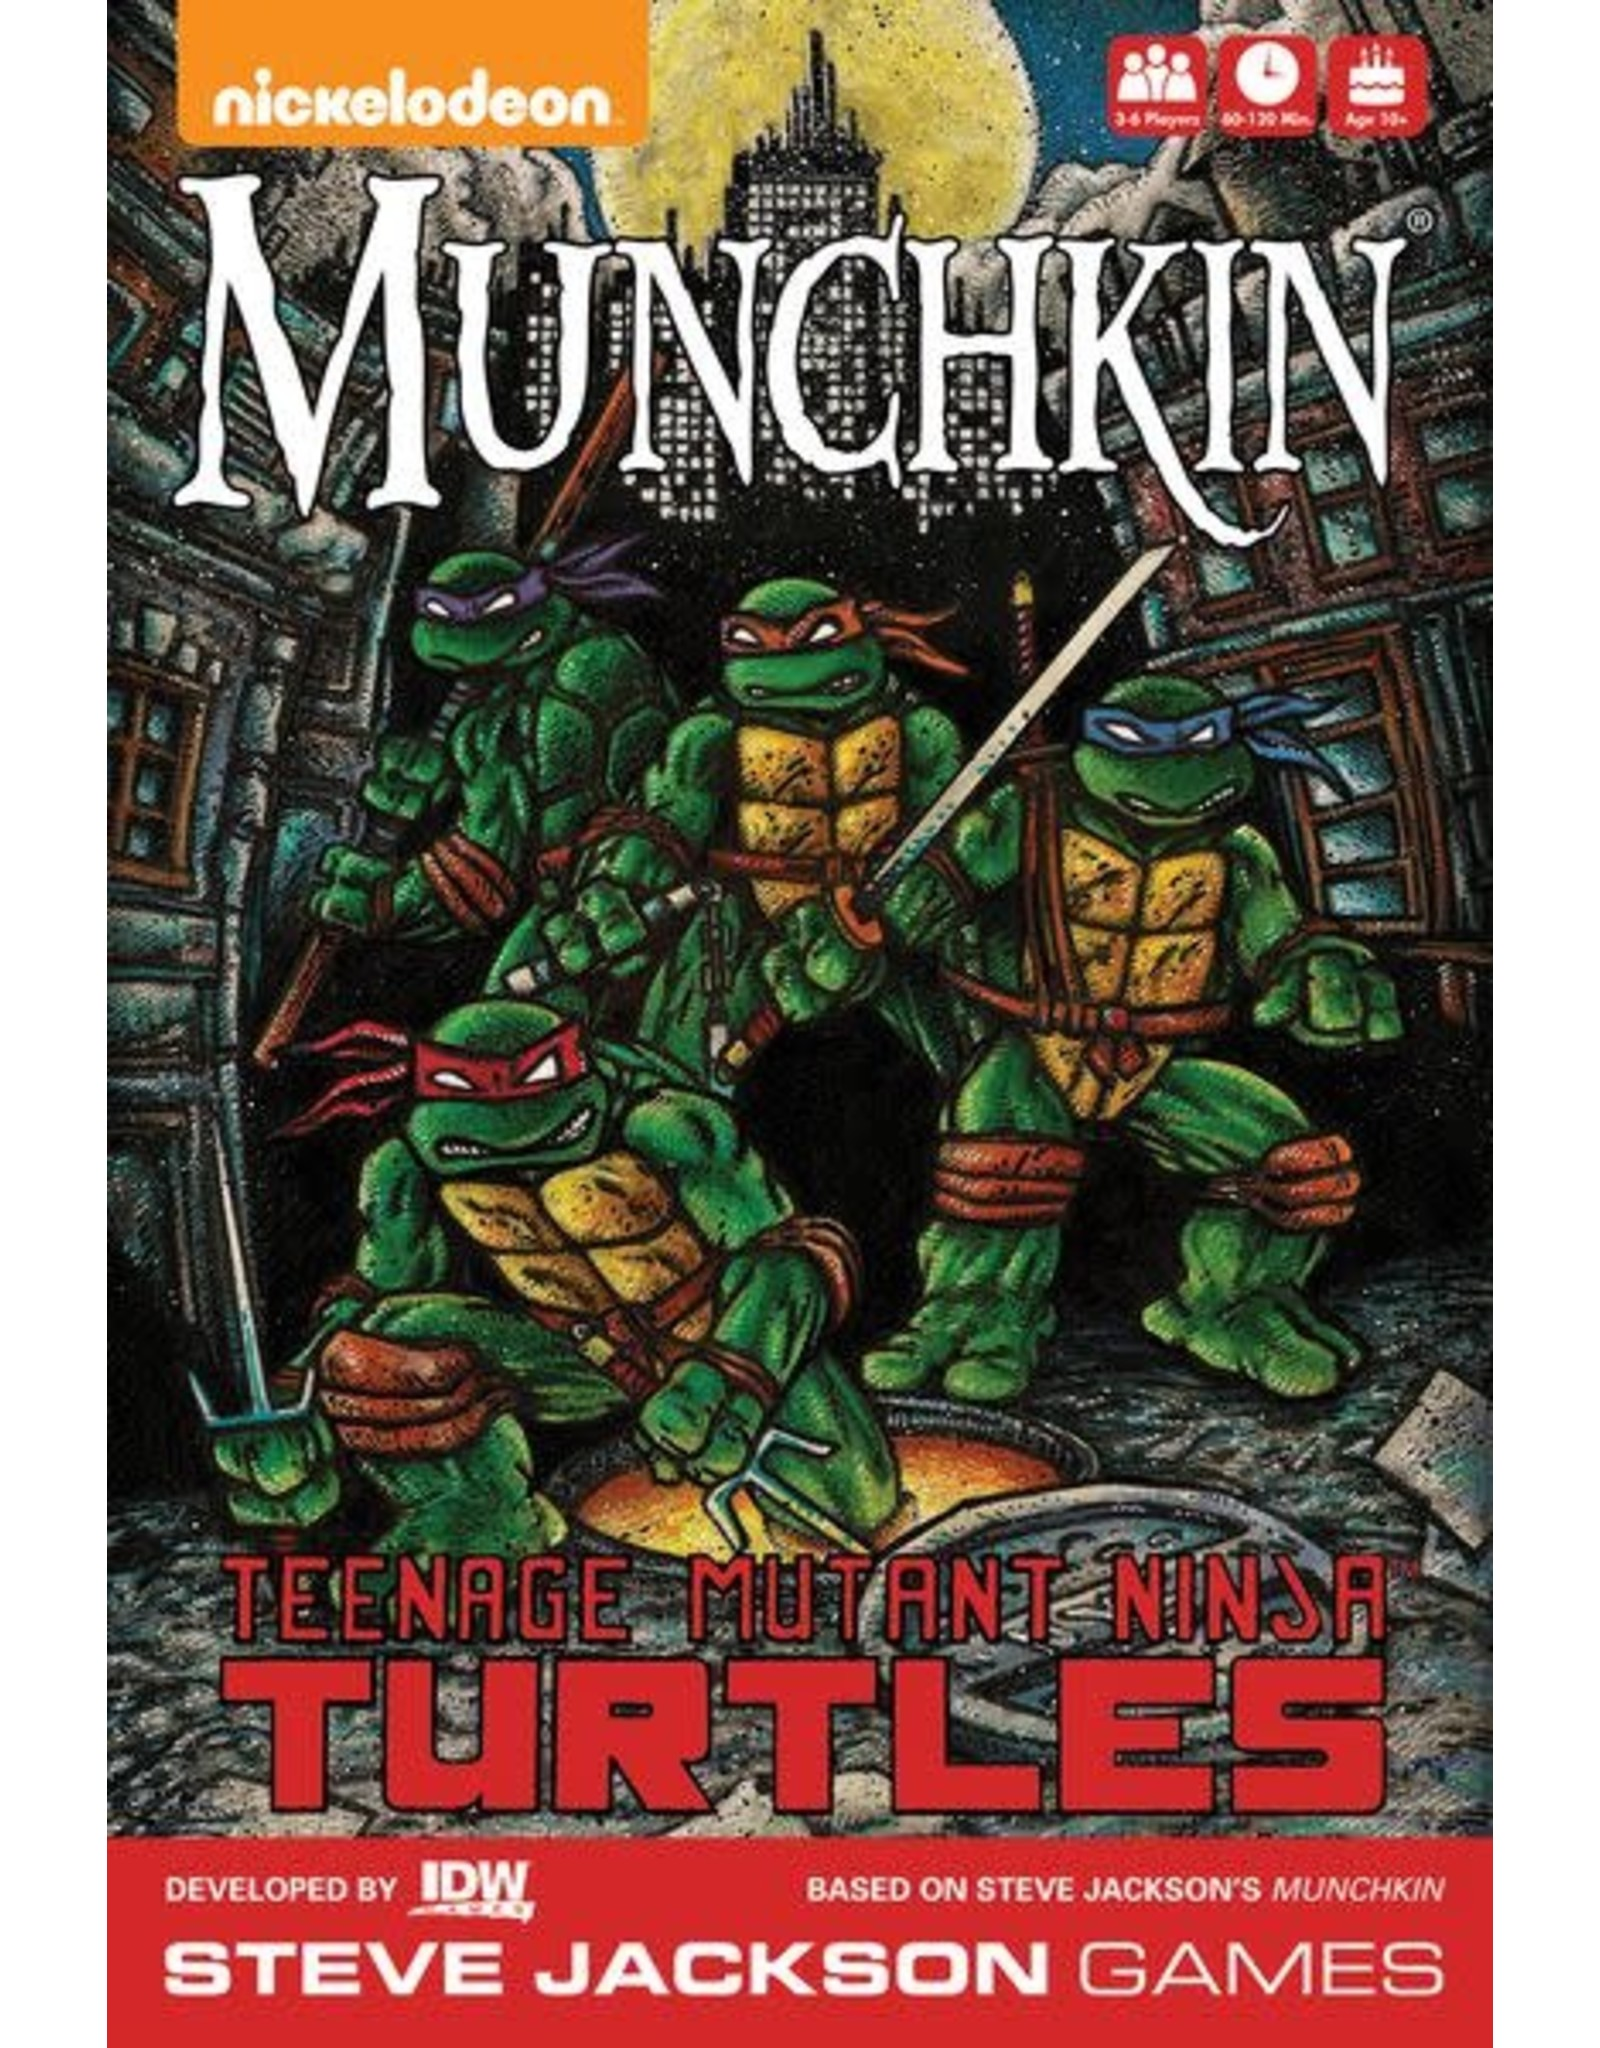 Munchkin Teenage Mutant Ninja Turtles